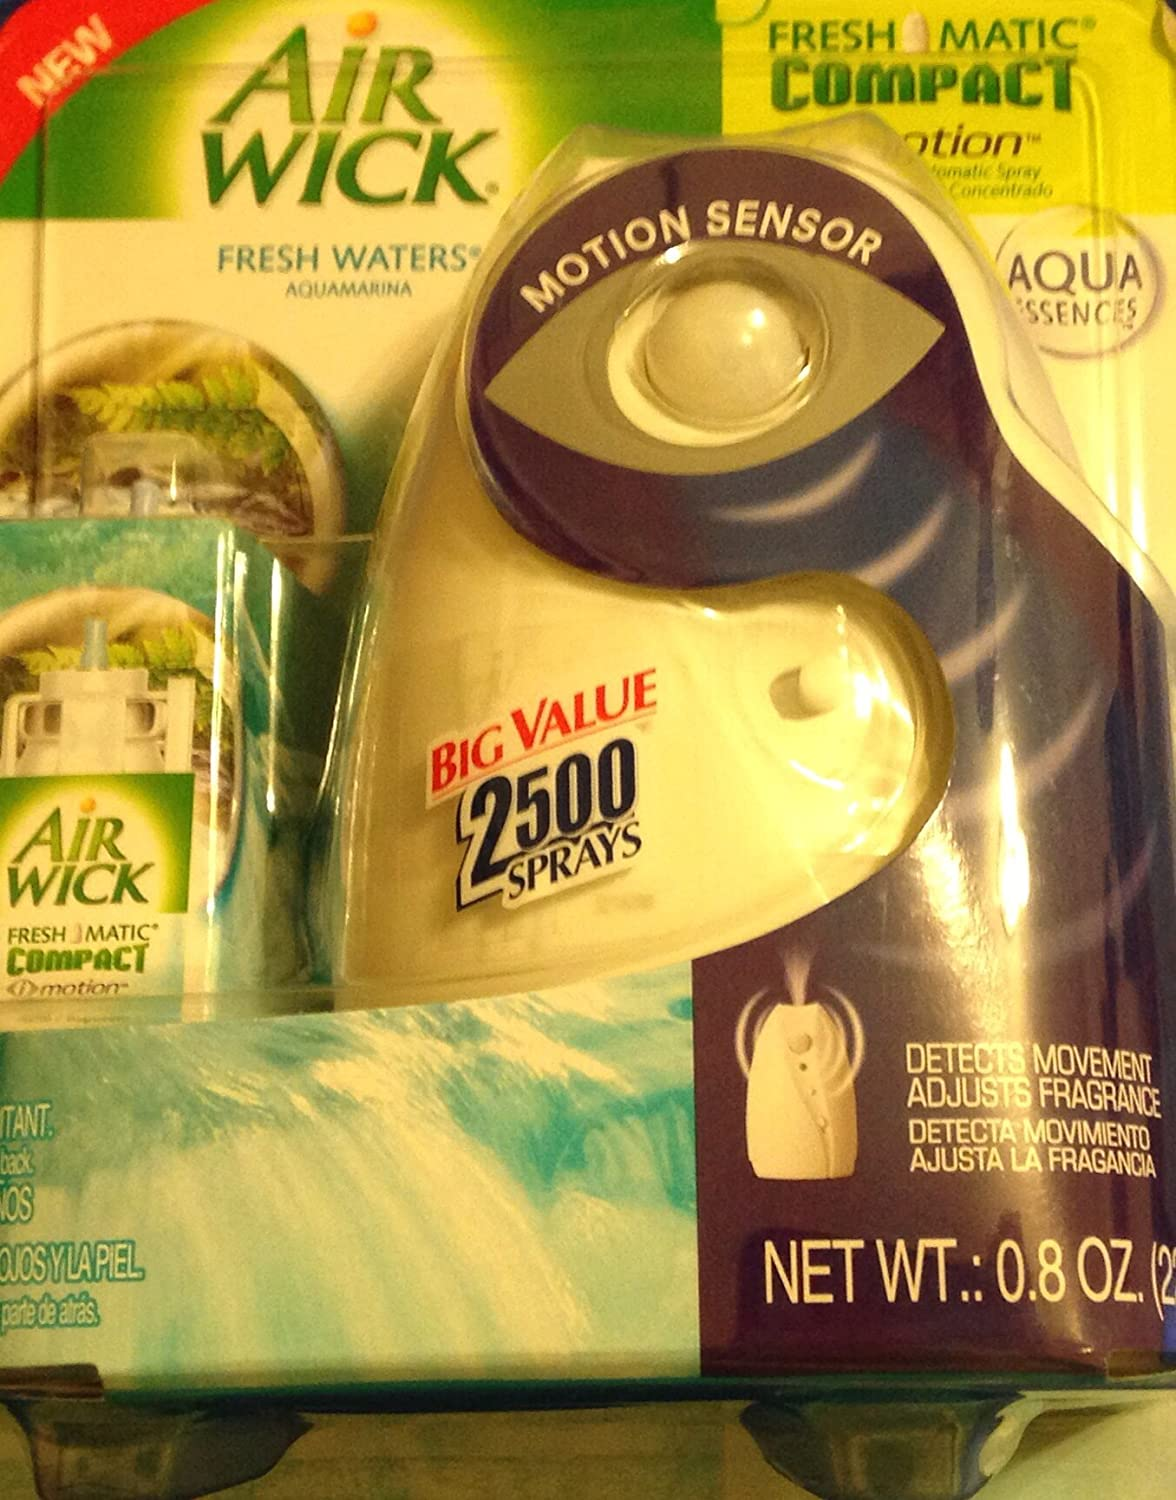 Amazon.com: Air Wick Freshmatic Compact I-Motion Fresh Waters Concentrated Automatic Spray: Health & Personal Care